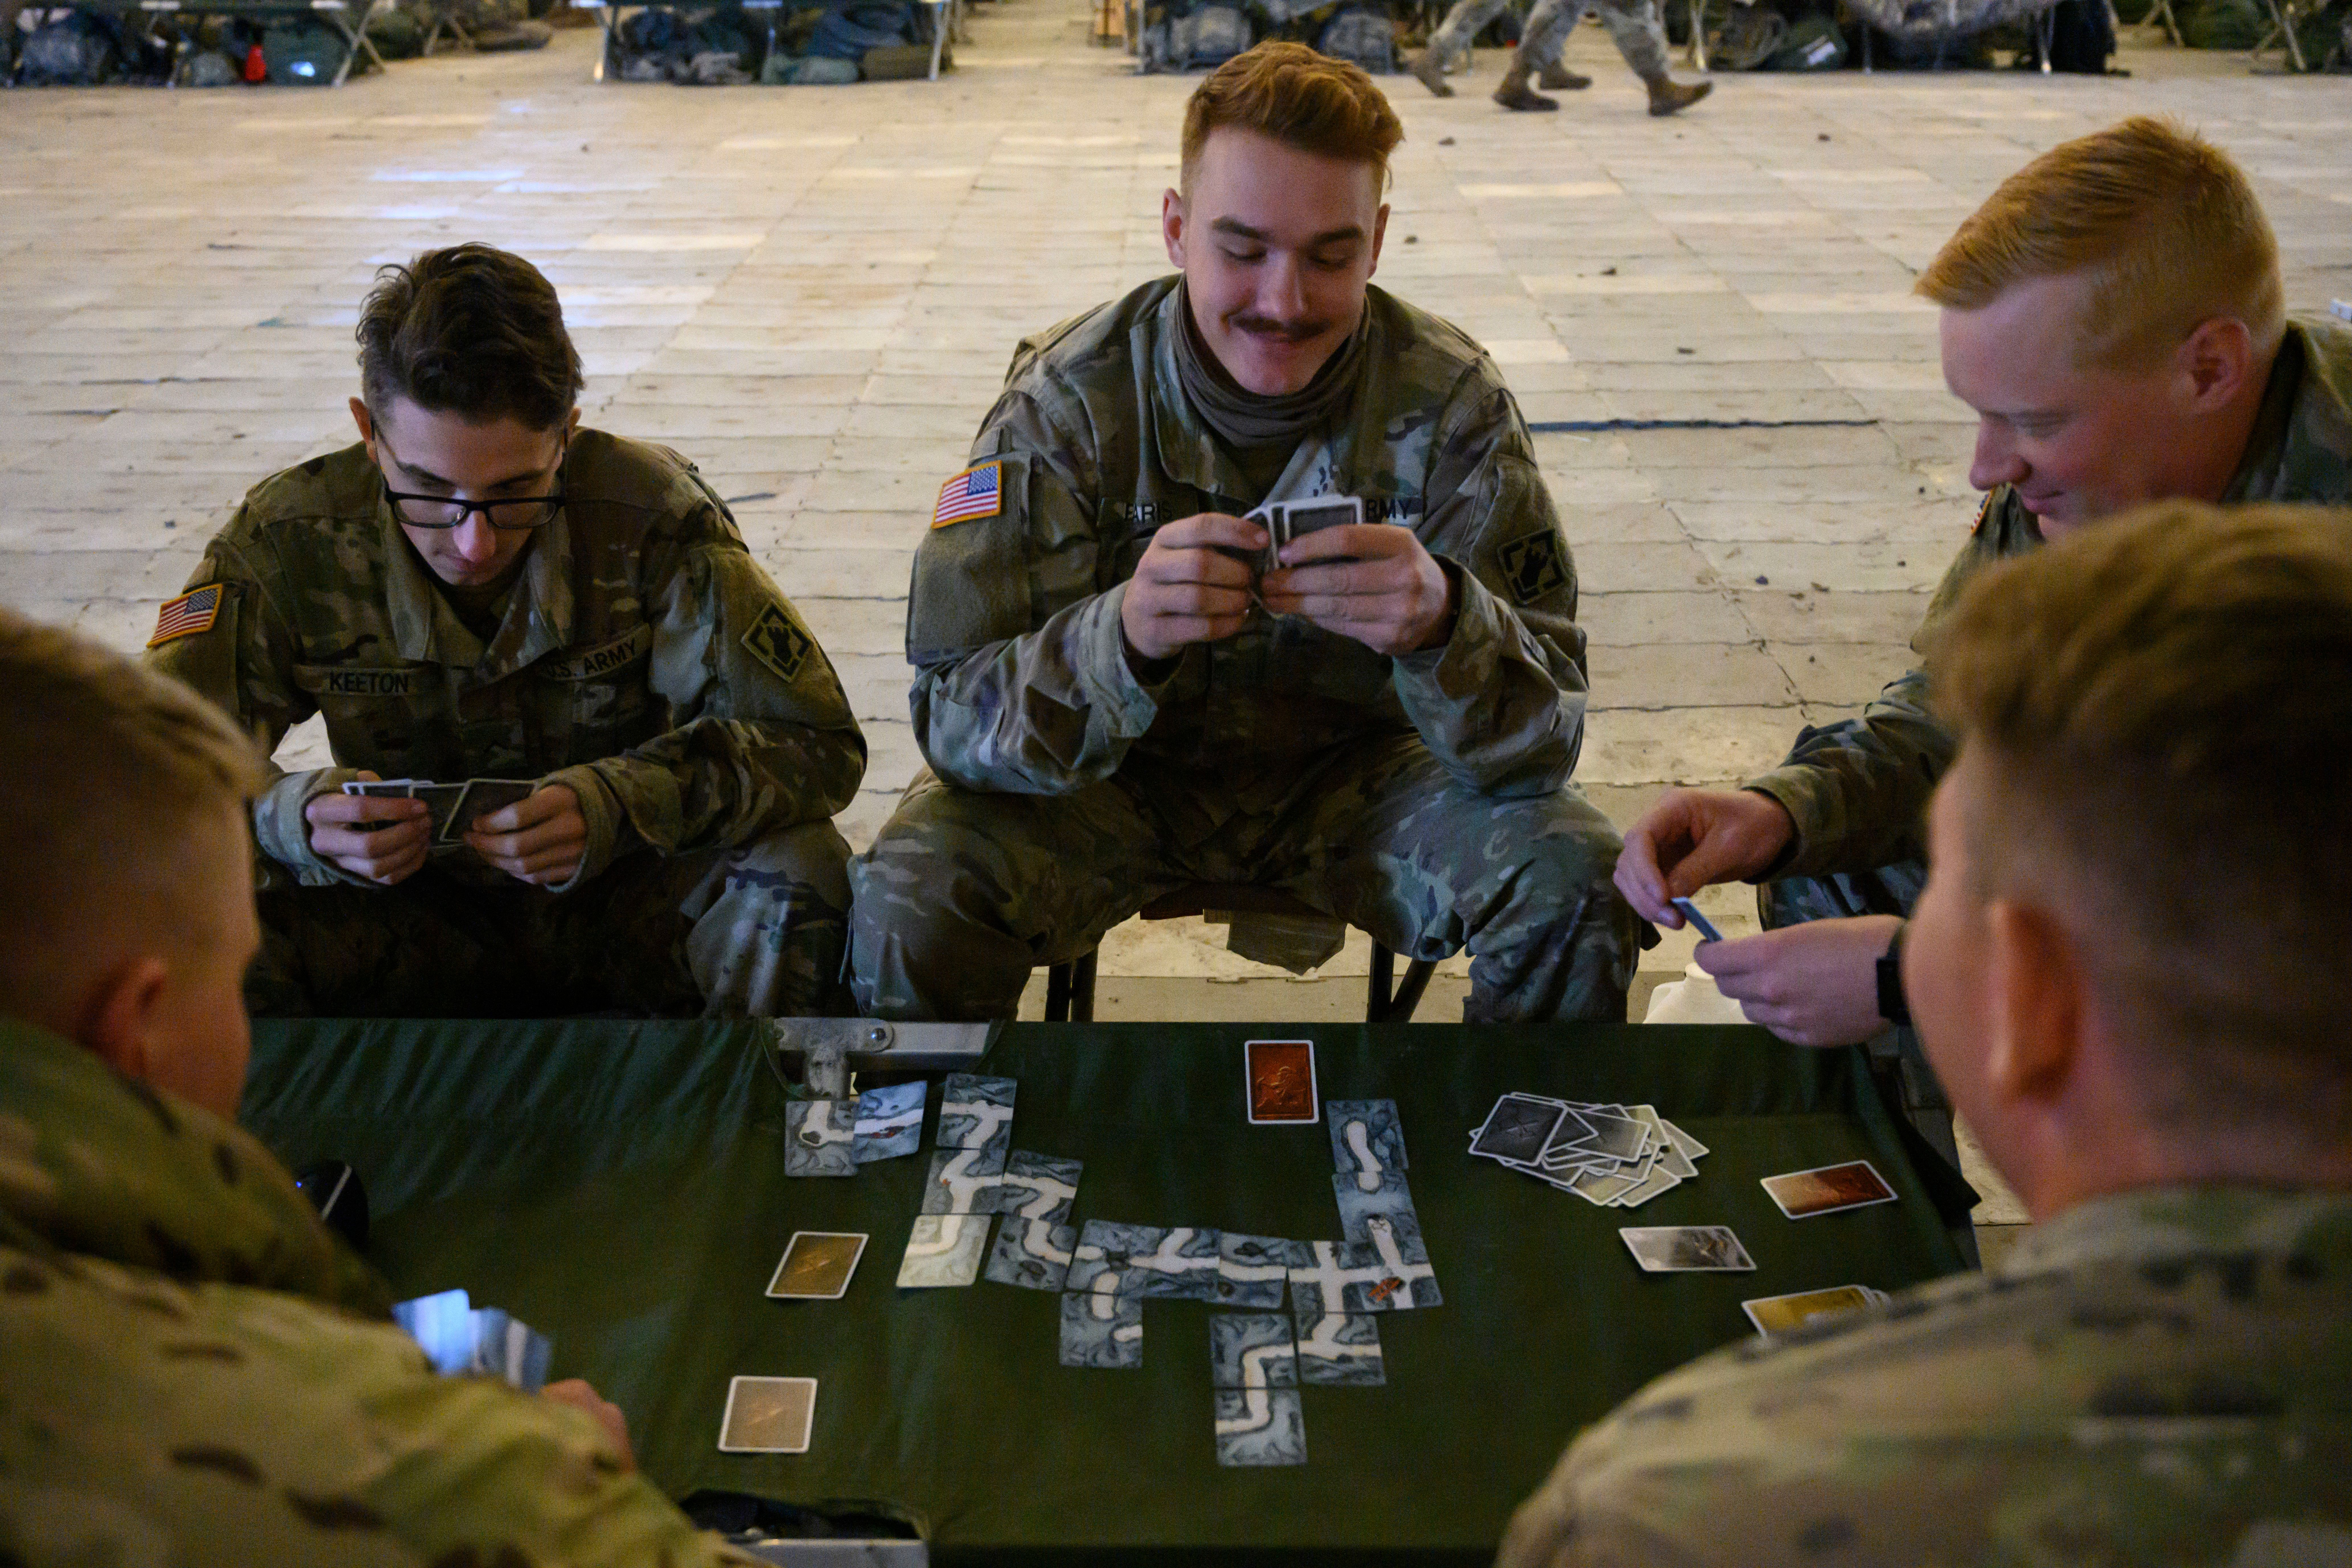 DONNA, TEXAS - NOVEMBER 10: Soldiers play cards in their tent at the military base camp Donna along the Mexican border in Donna, Texas on November 10, 2018. (Photo by Calla Kessler/The Washington Post via Getty Images)